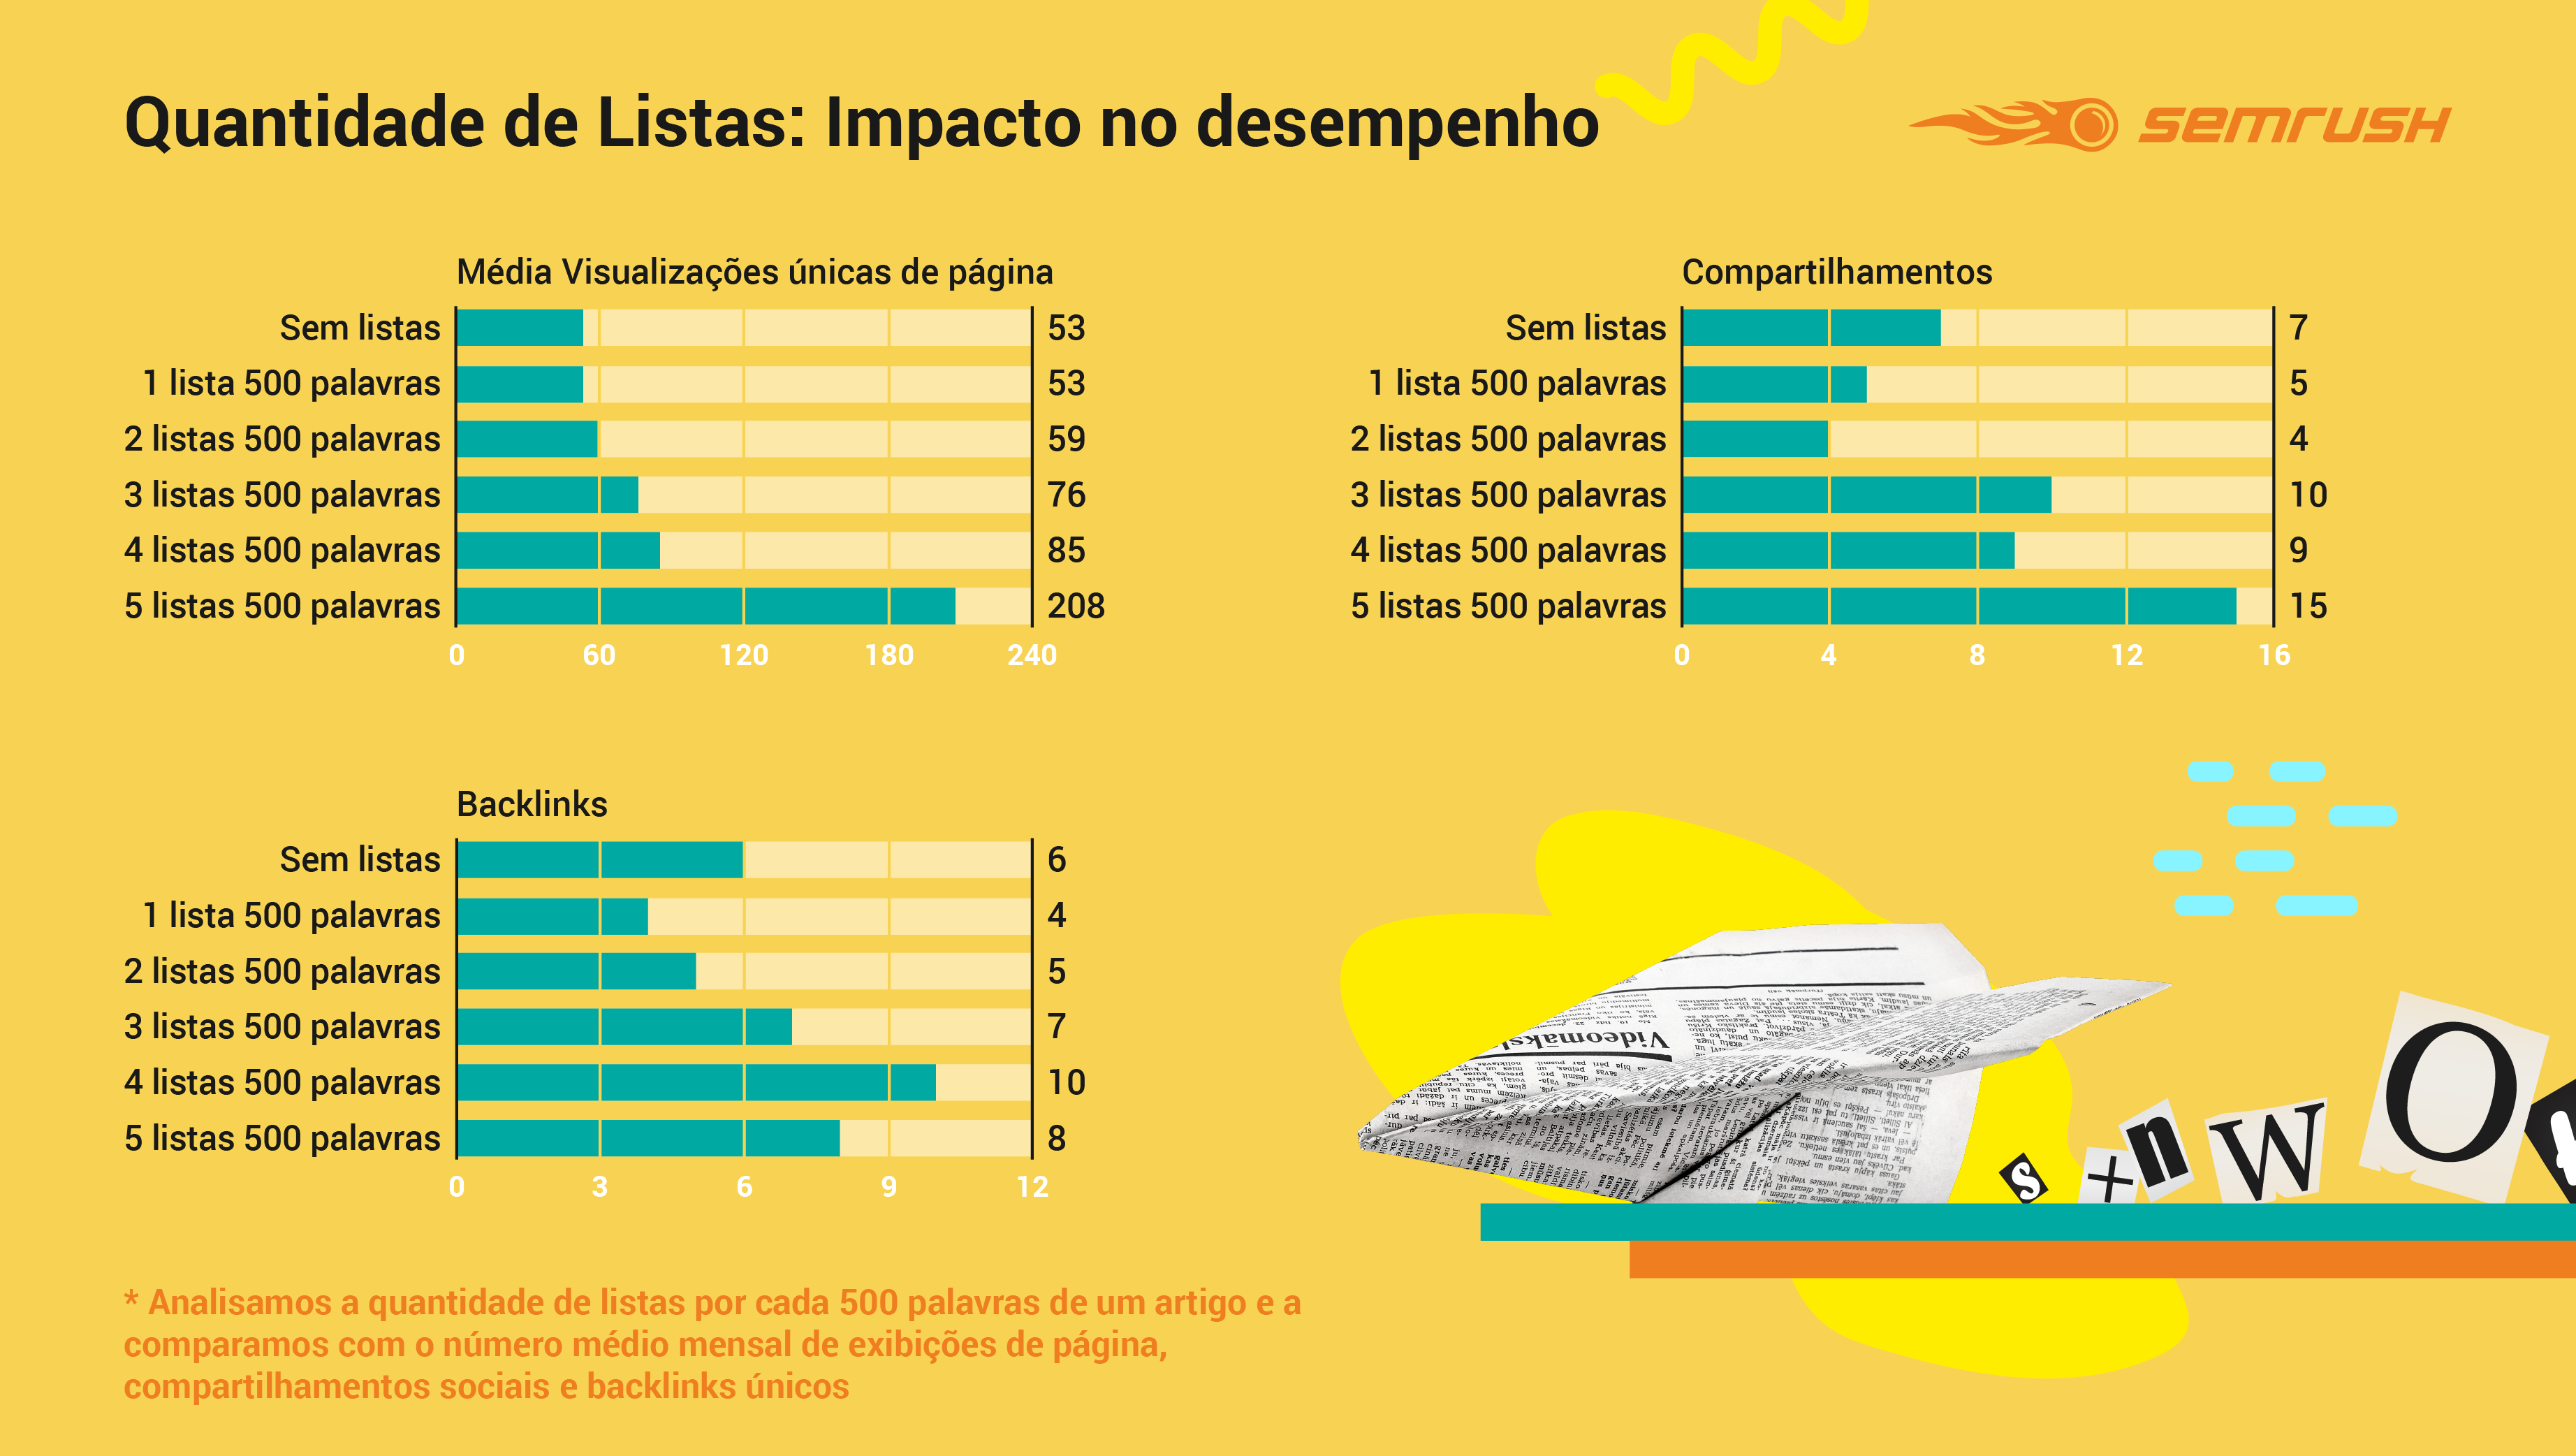 Number of Lists Impact on Performance